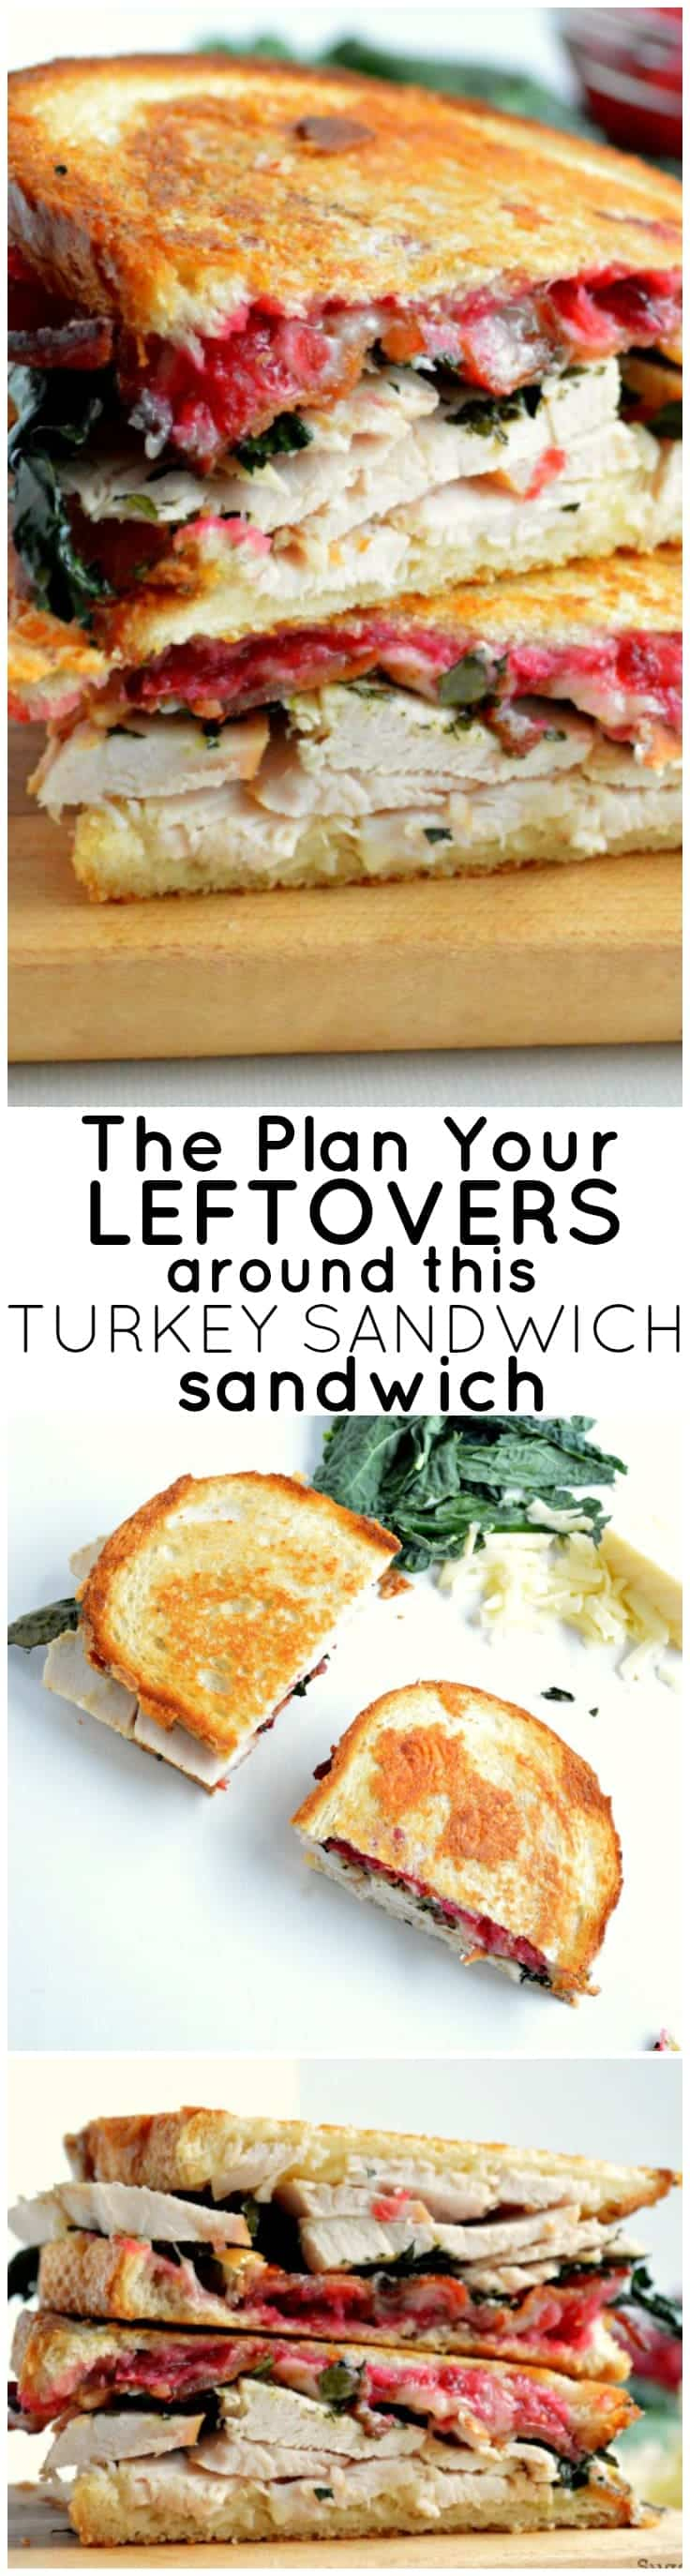 You will ABSOLUTELY want to plan your leftovers around this turkey sandwich!